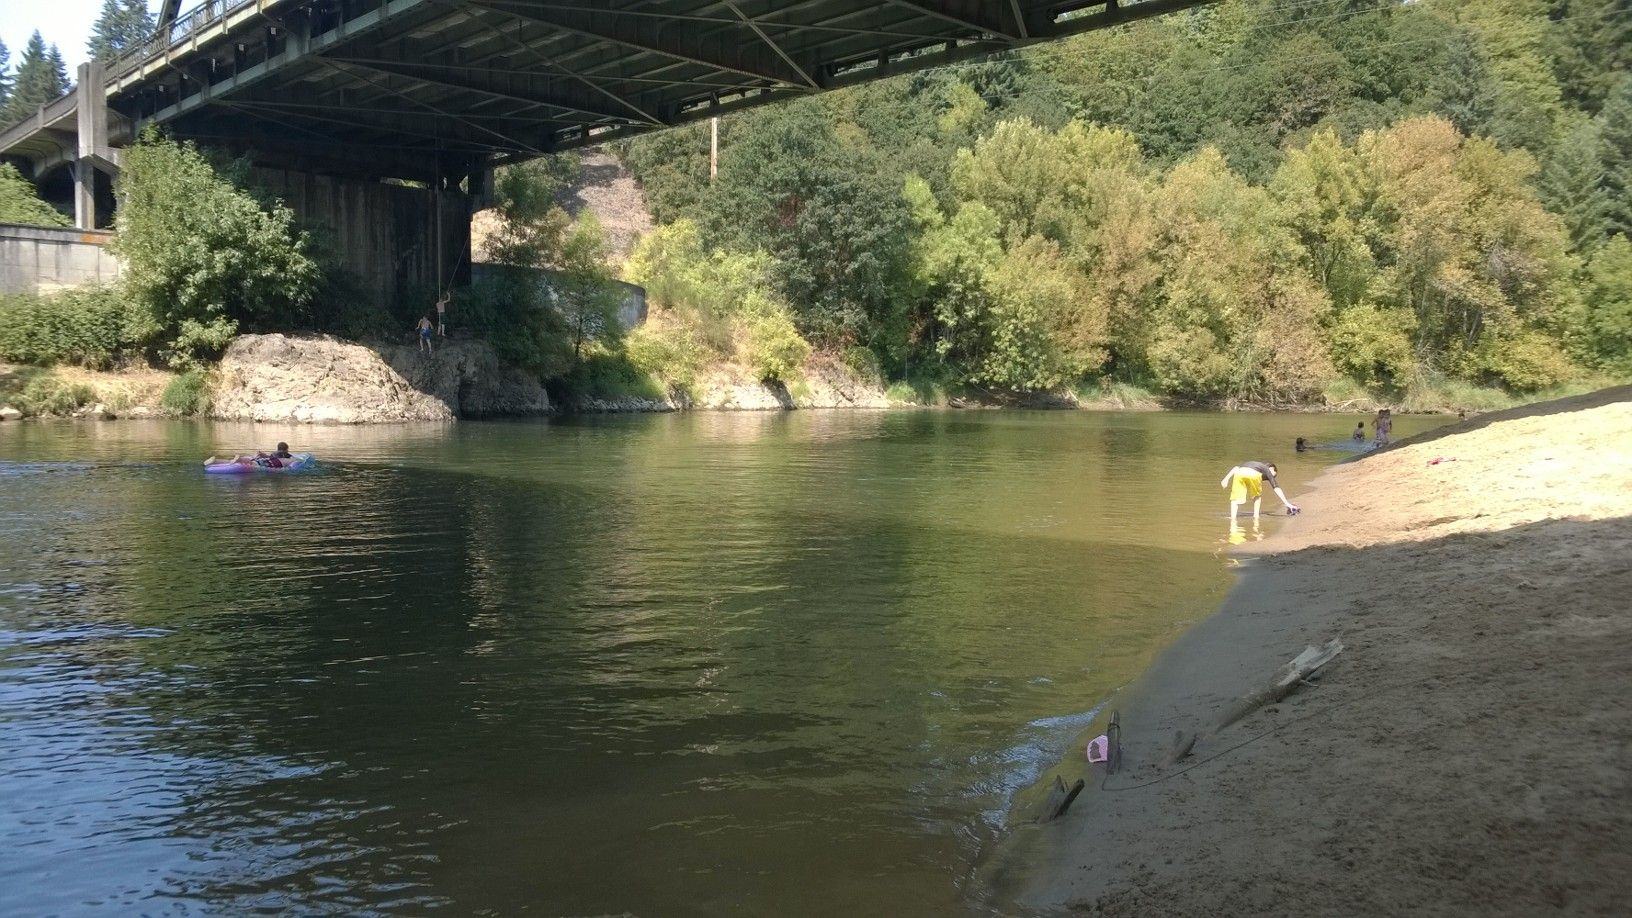 My kids floating down the Lewis River, WA...life is so beautiful.